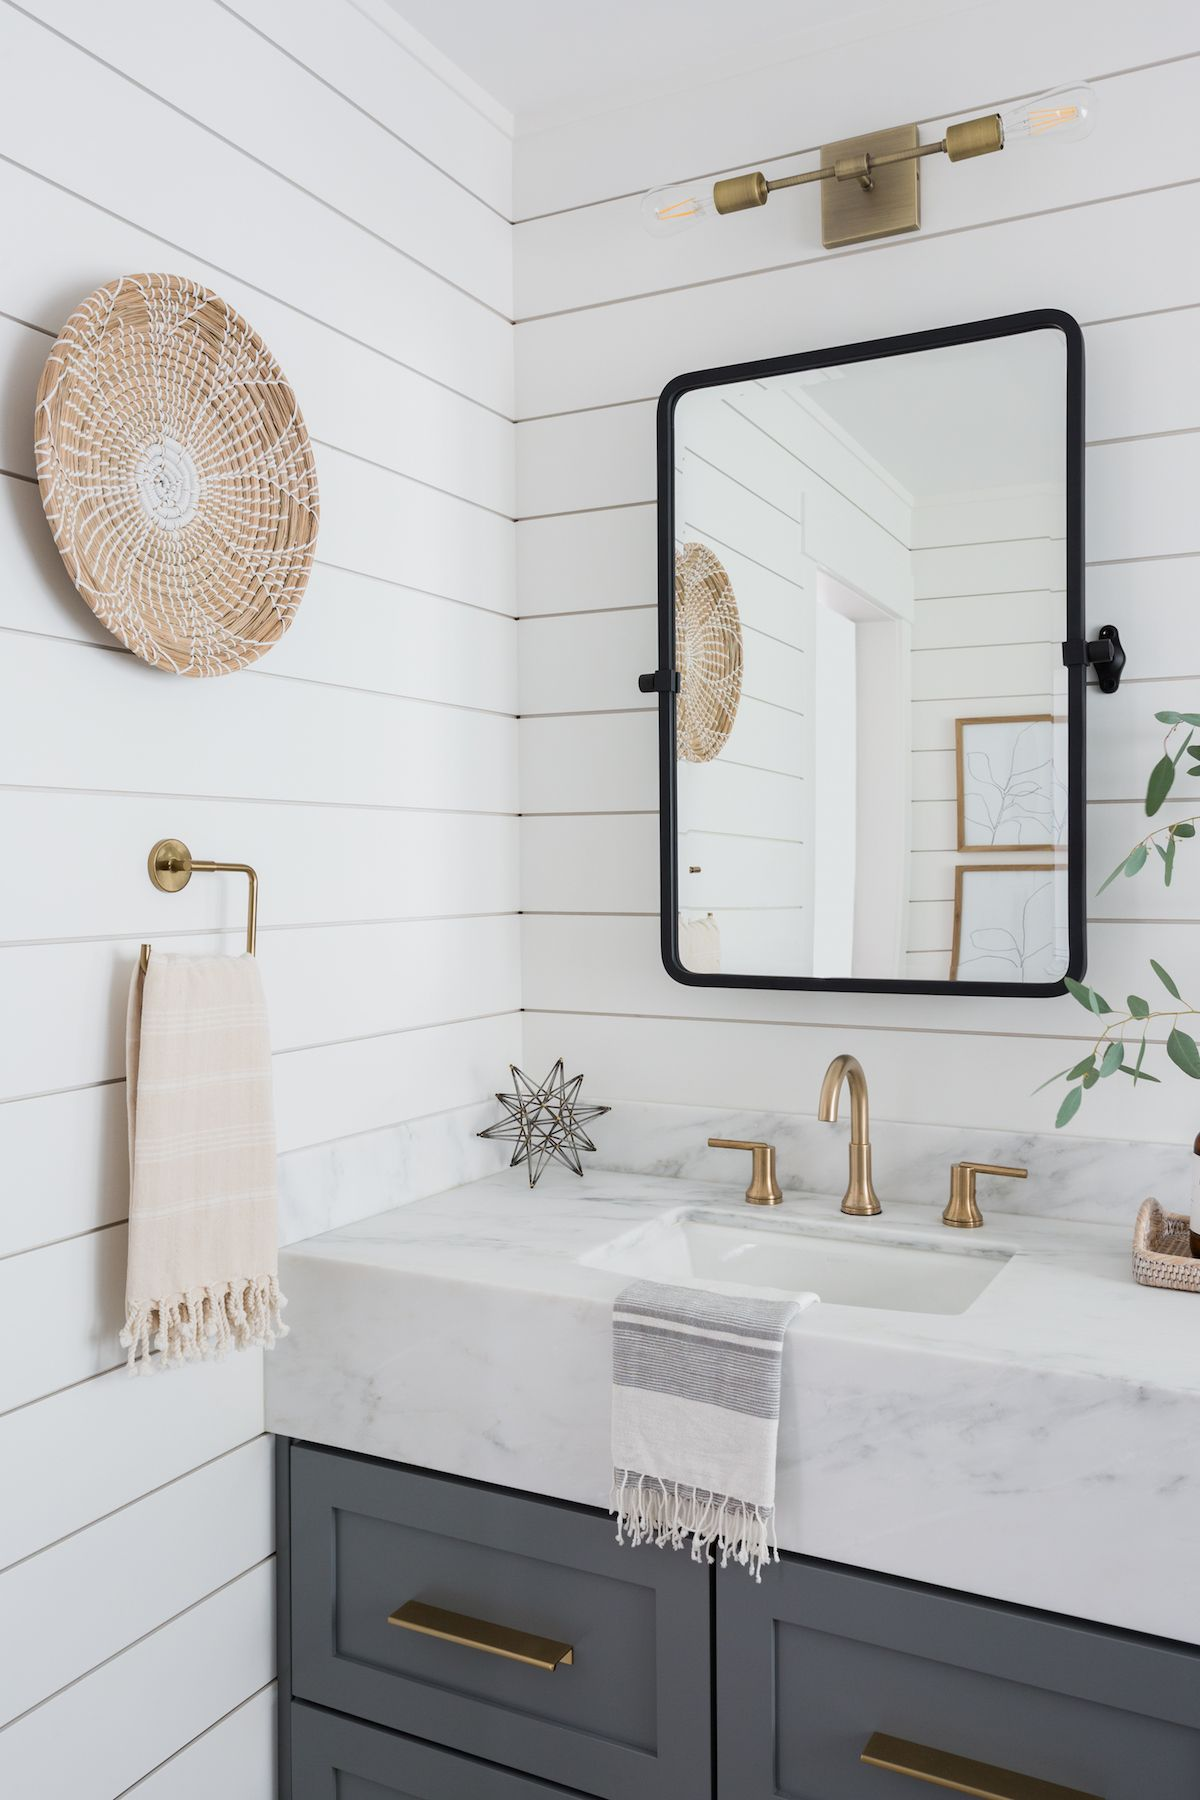 Photo of Light & Airy Bathroom with Shiplap, Patterned Tile & Mixed Metals – HAVEN